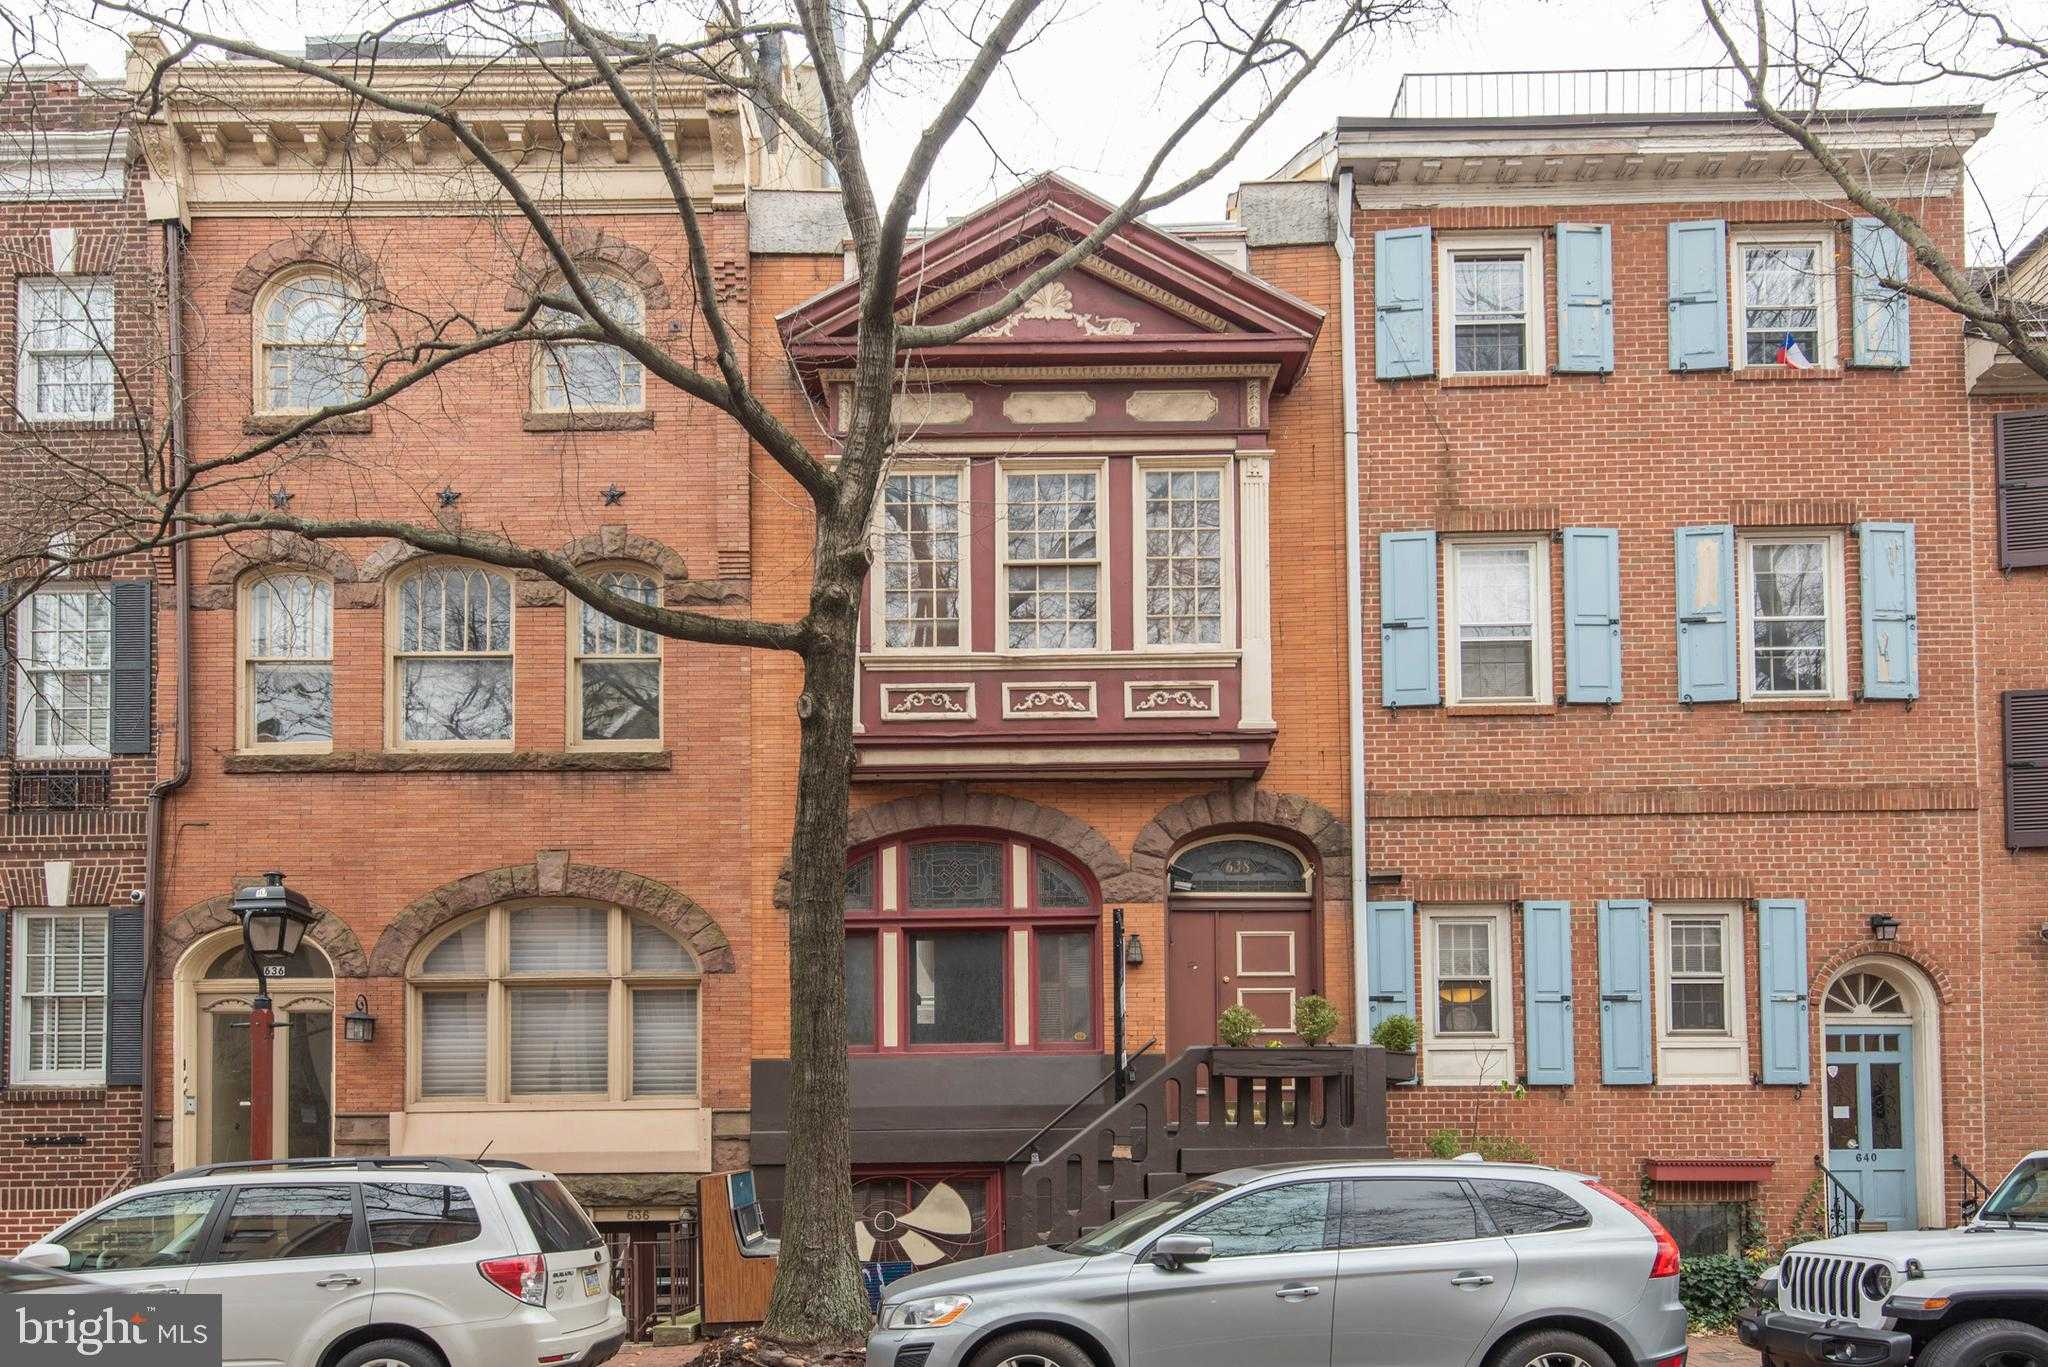 $1,124,000 - 3Br/3Ba -  for Sale in Society Hill, Philadelphia